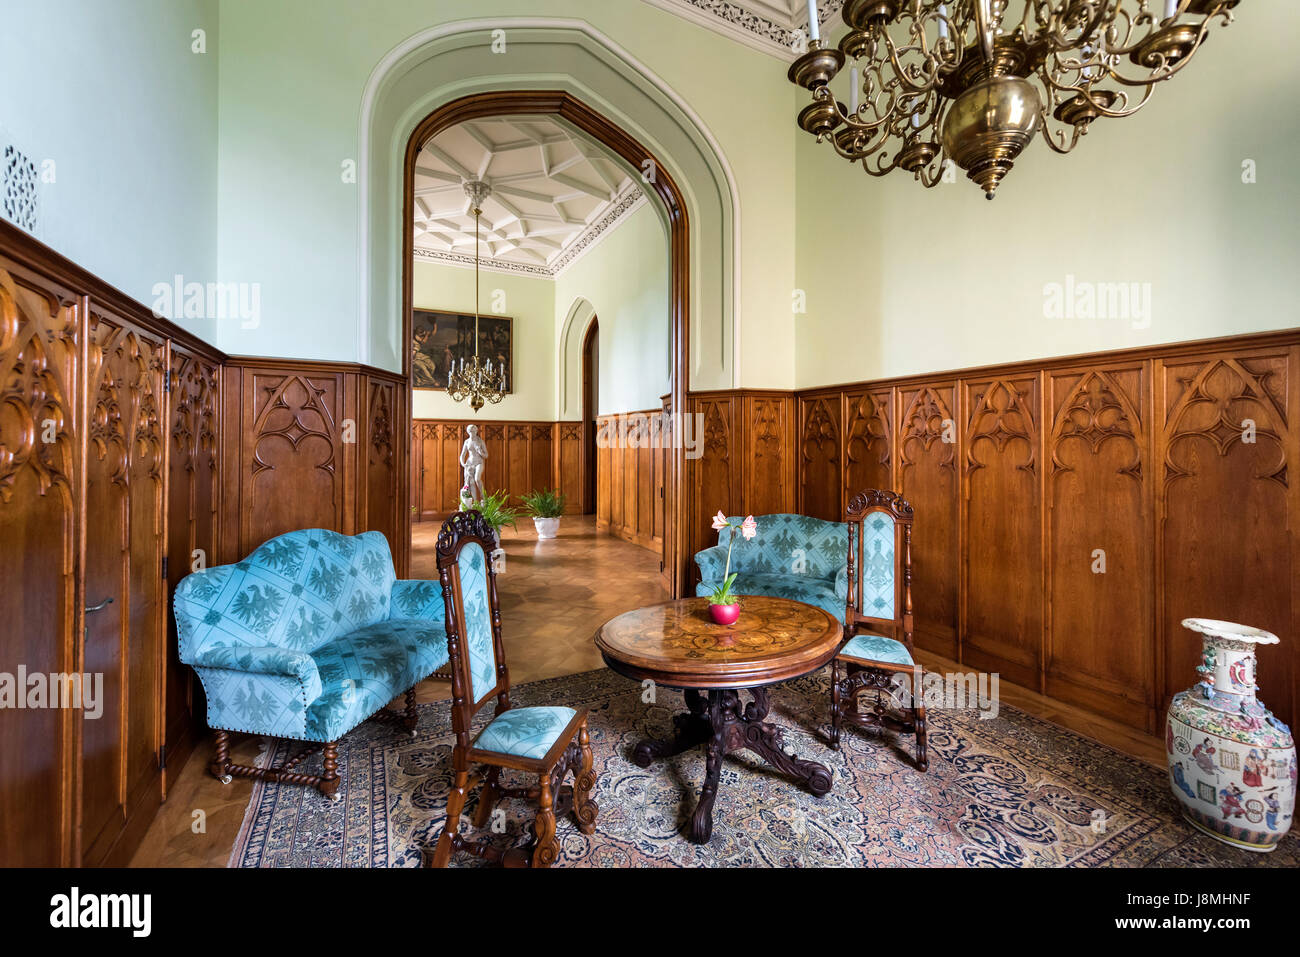 lednice, czech republic - may 06, 2017: blue hall in lednice